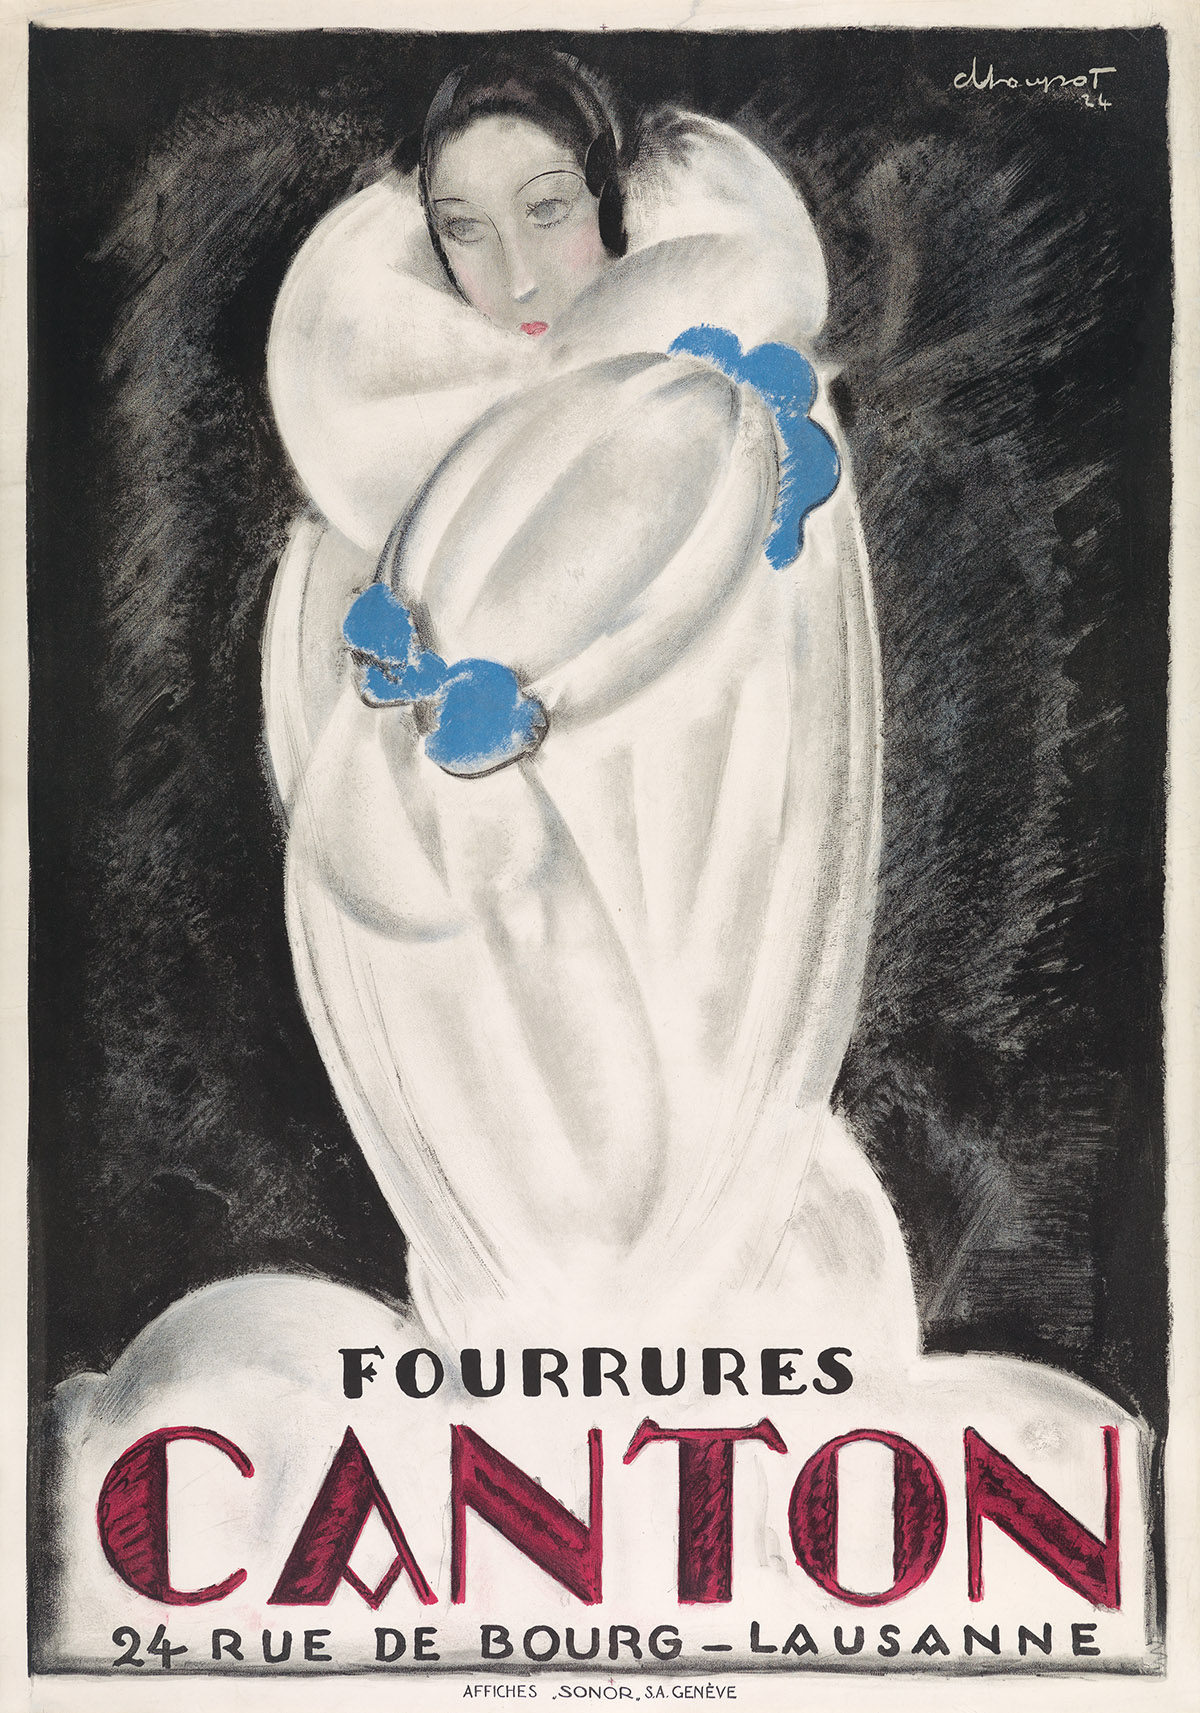 CHARLES-LOUPOT-(1892-1962)-FOURRURES-CANTON-1924-50x35-inche